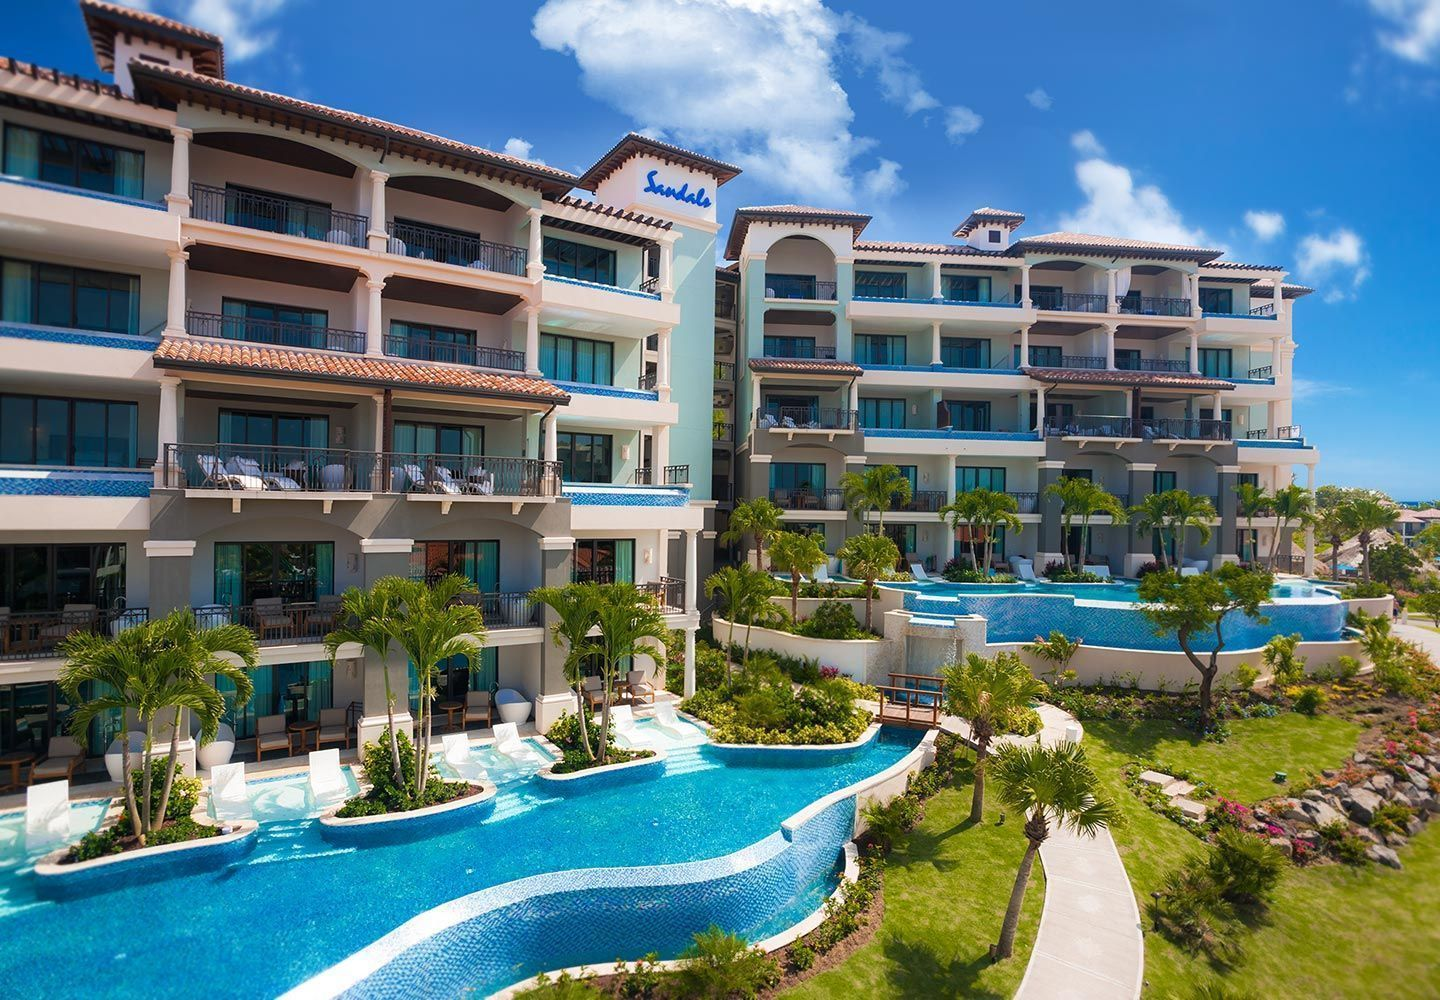 Sandals Lasource Is One Of Grenada S Leading Resorts For Those Traveling With Family